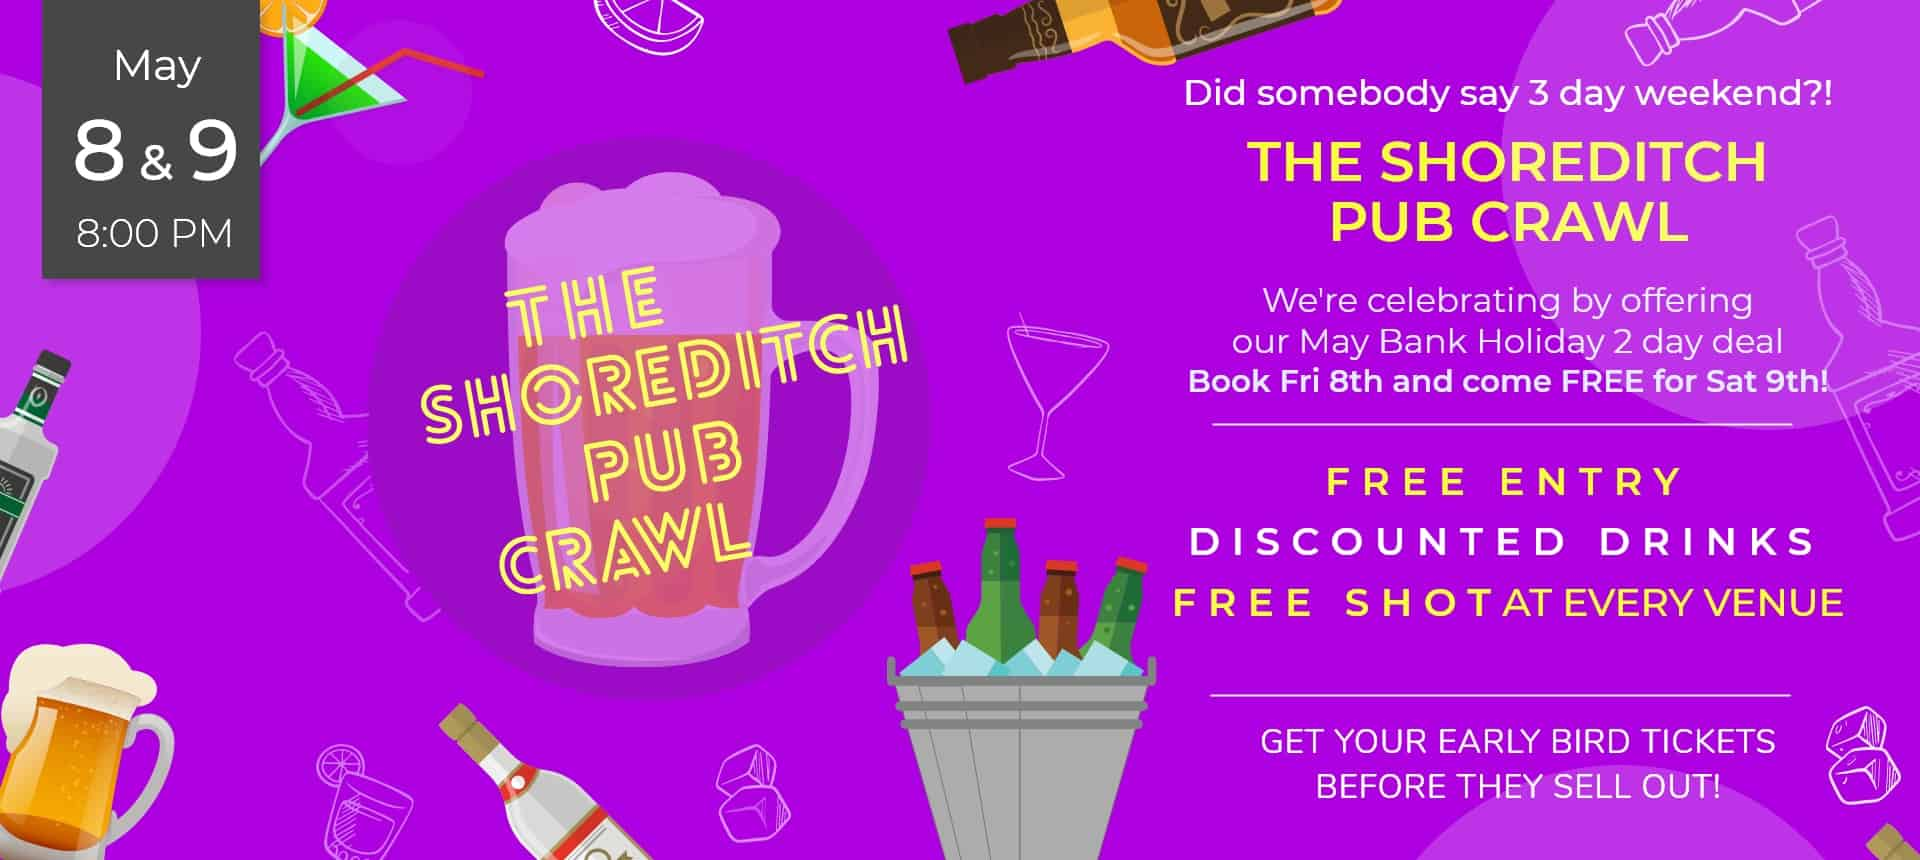 May Bank Holiday Pub Crawl